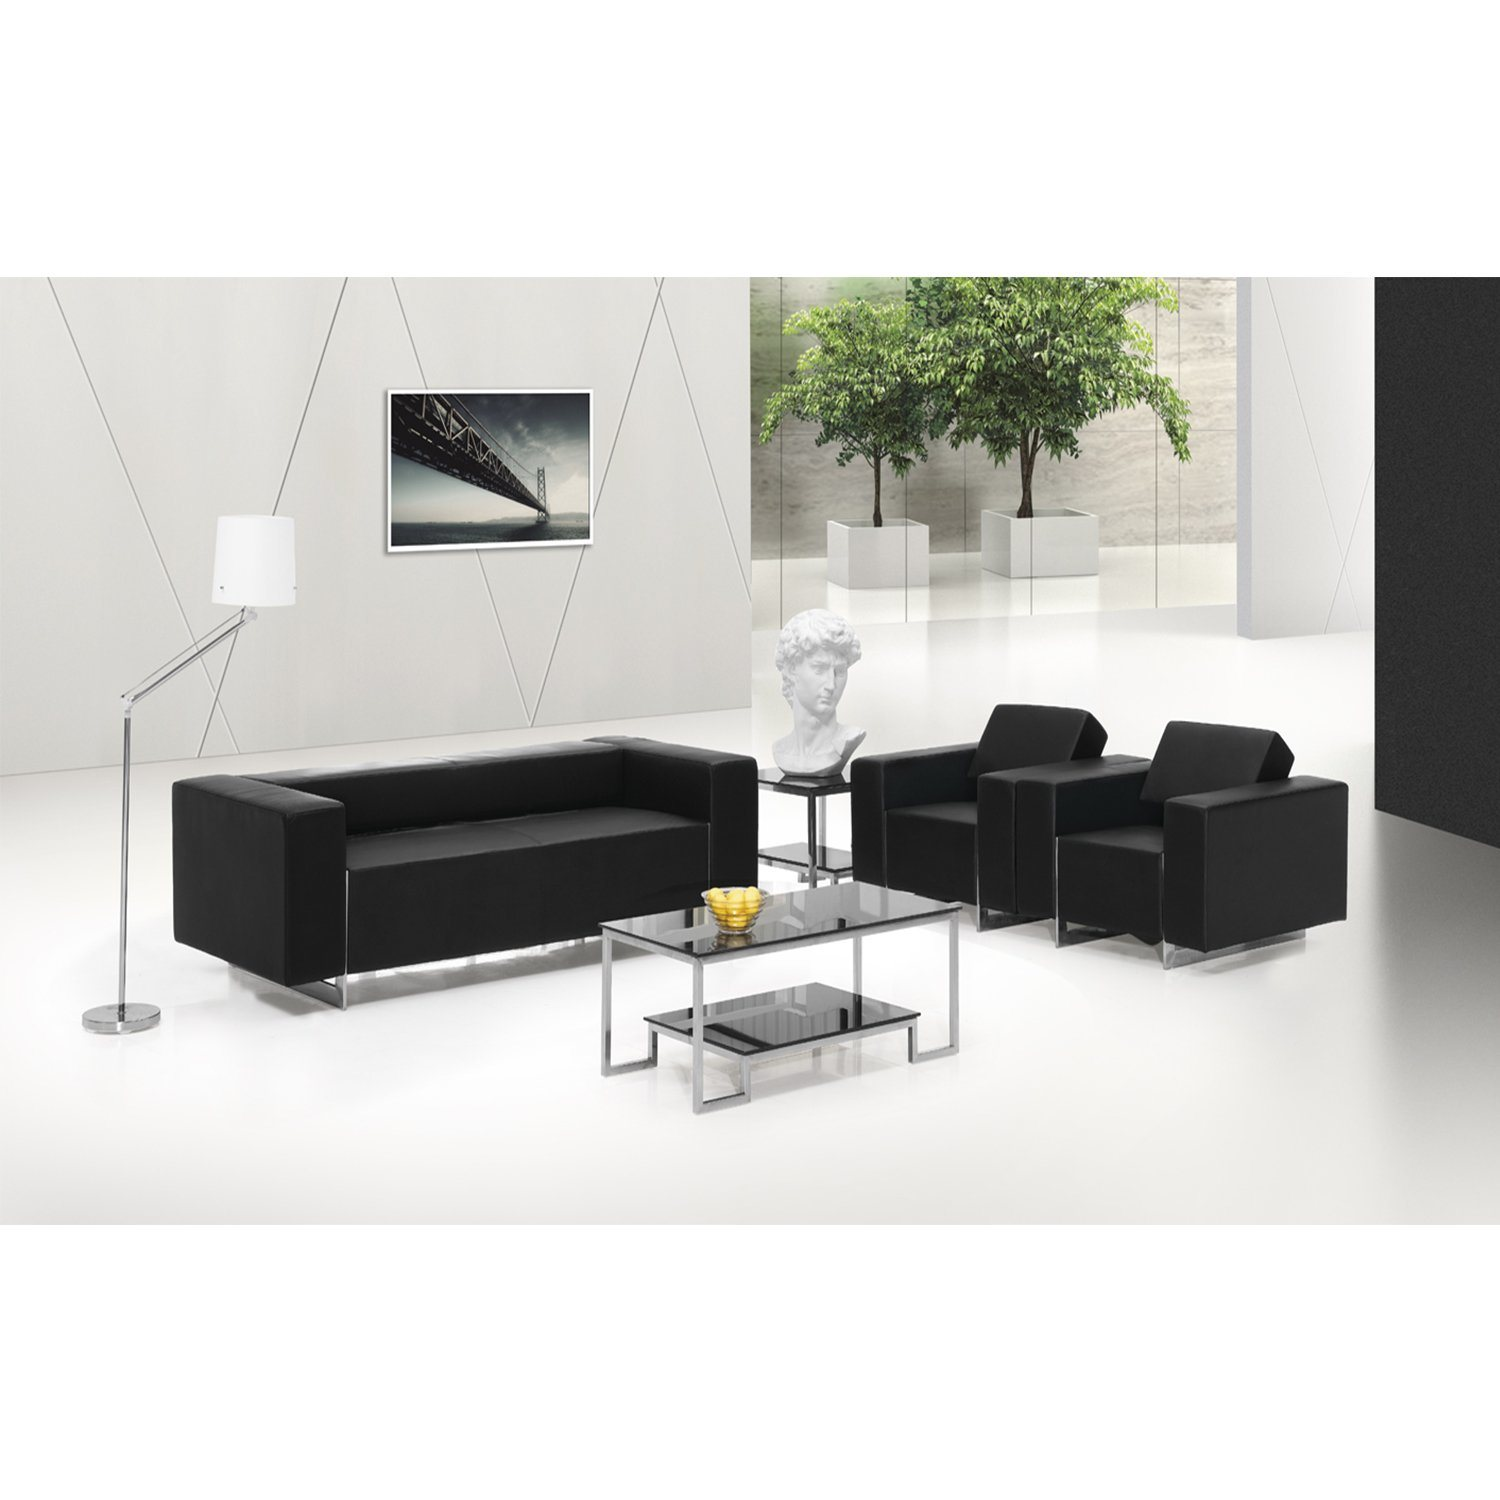 [Hot Item] Modern Design Black Leather Office Furniture Office Sofa